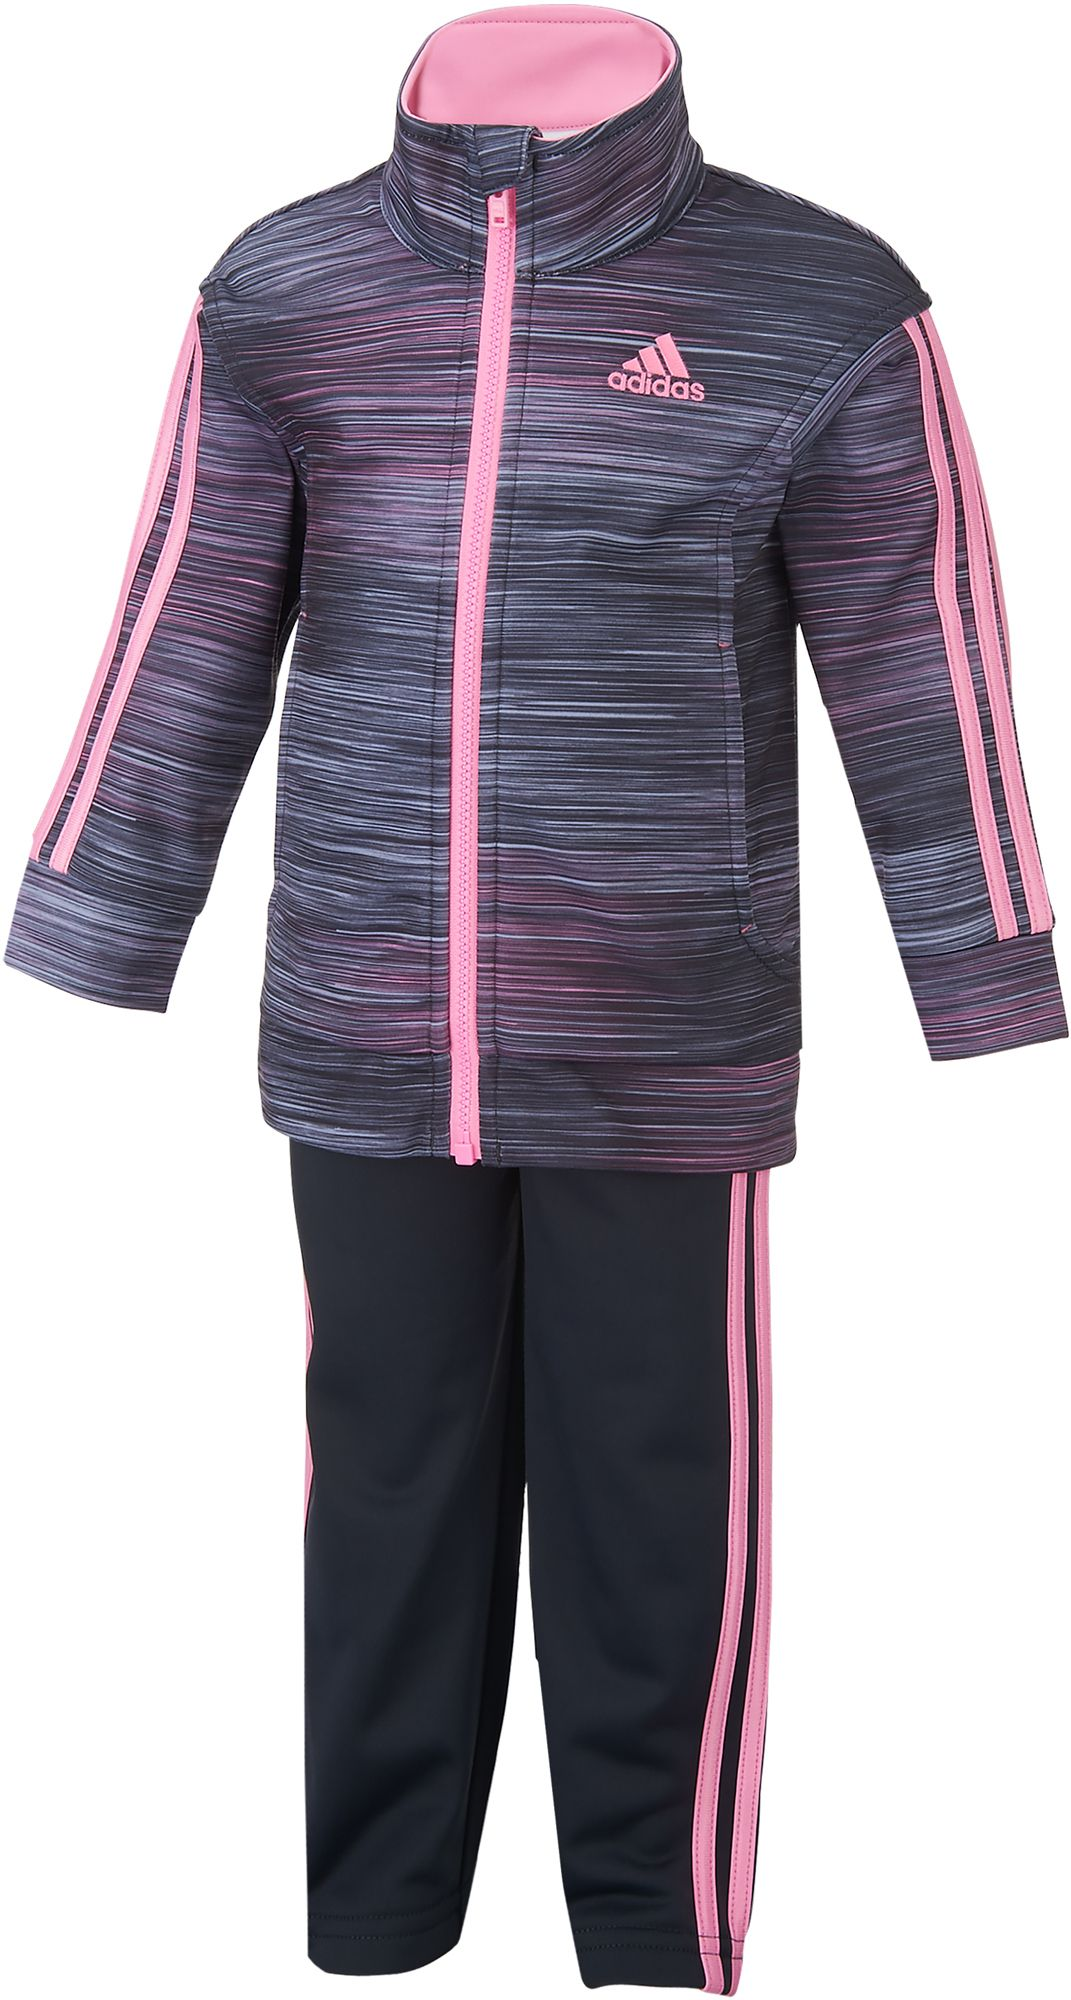 adidas Infant Girls Printed Tricot Jacket and Pants Set DICKS Sporting Goods